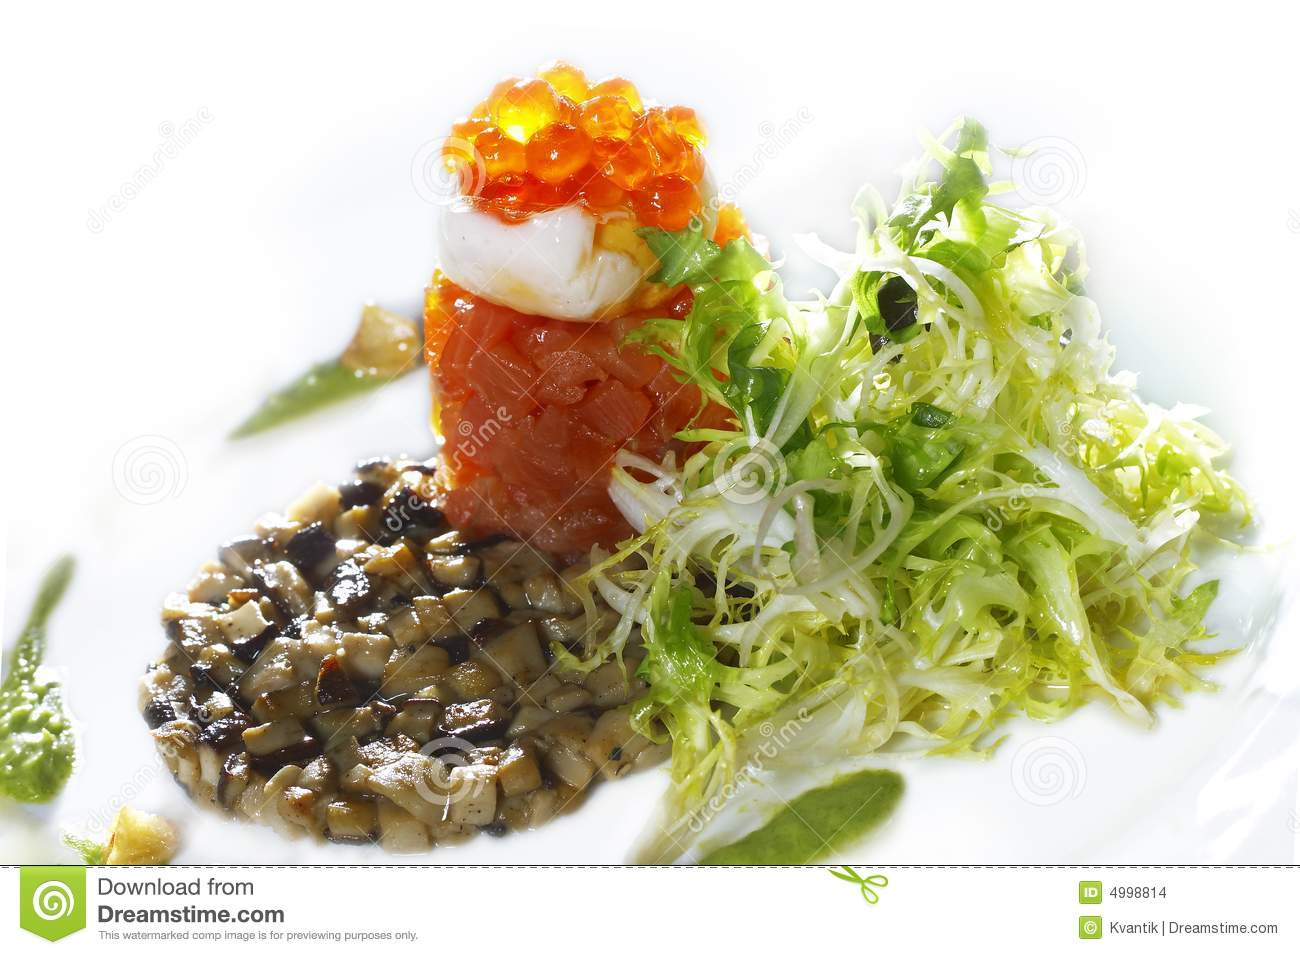 Salmon Appetizer With Caviar And Mushrooms Stock Images - Image ...